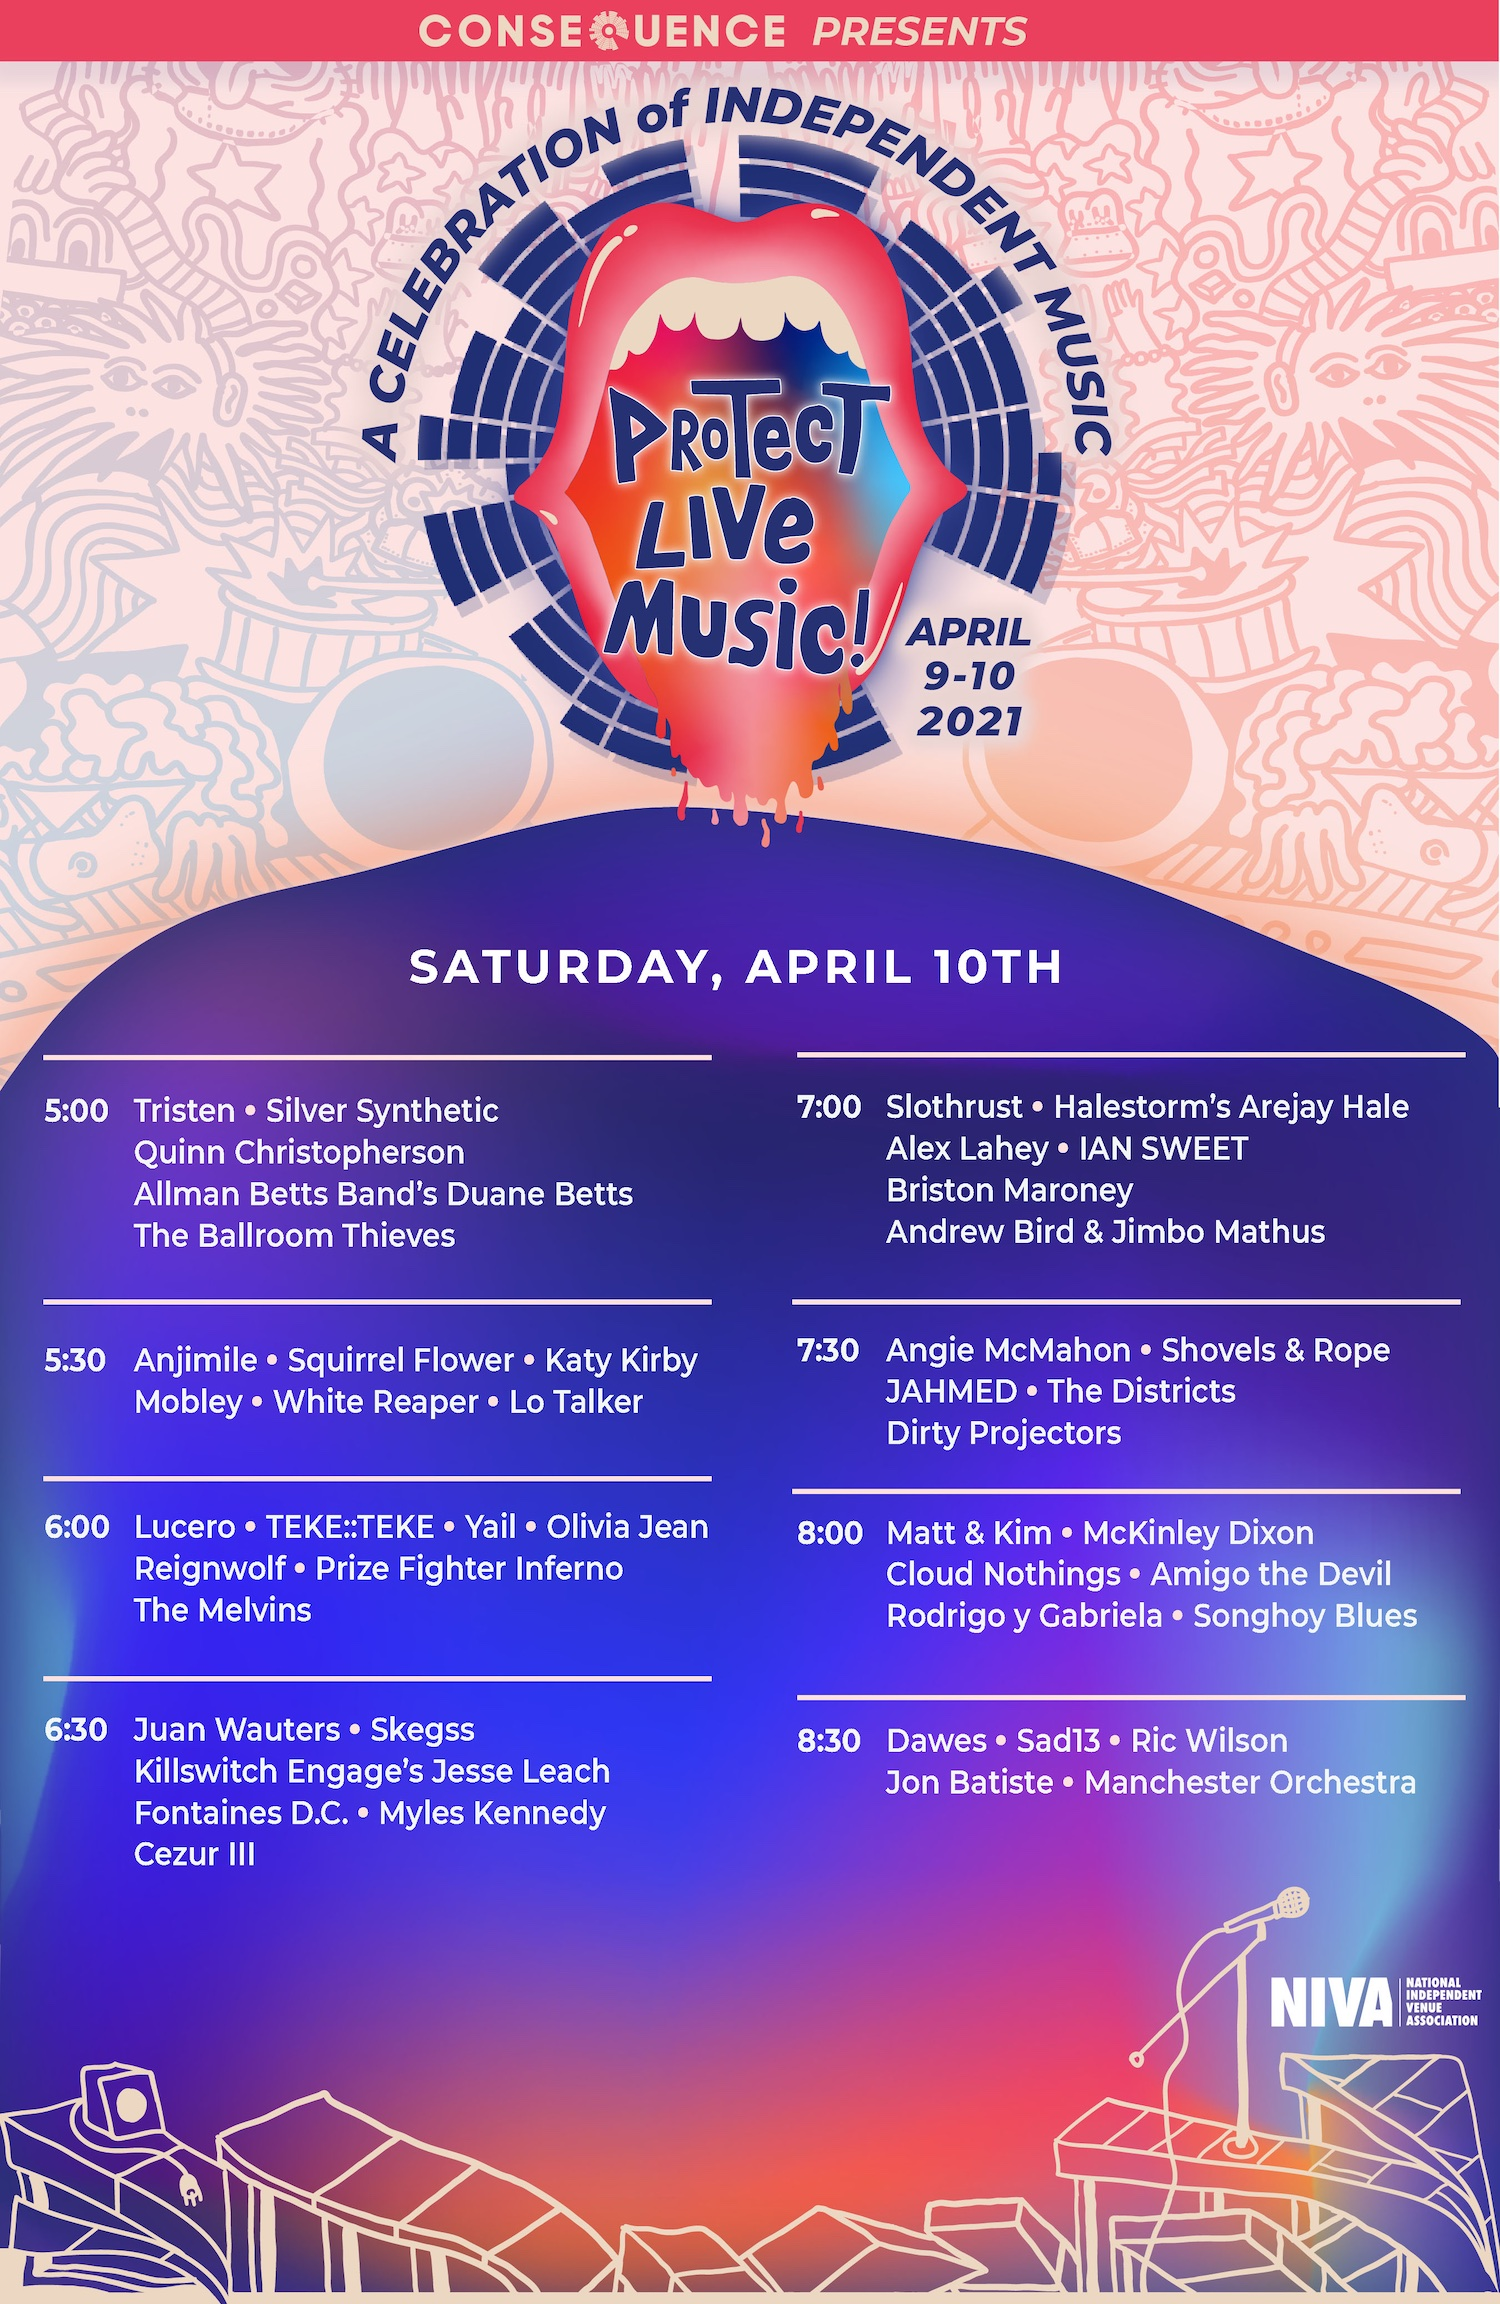 Saturday Consequence of Sound Protect Live Music Daily Schedule Poster FINAL